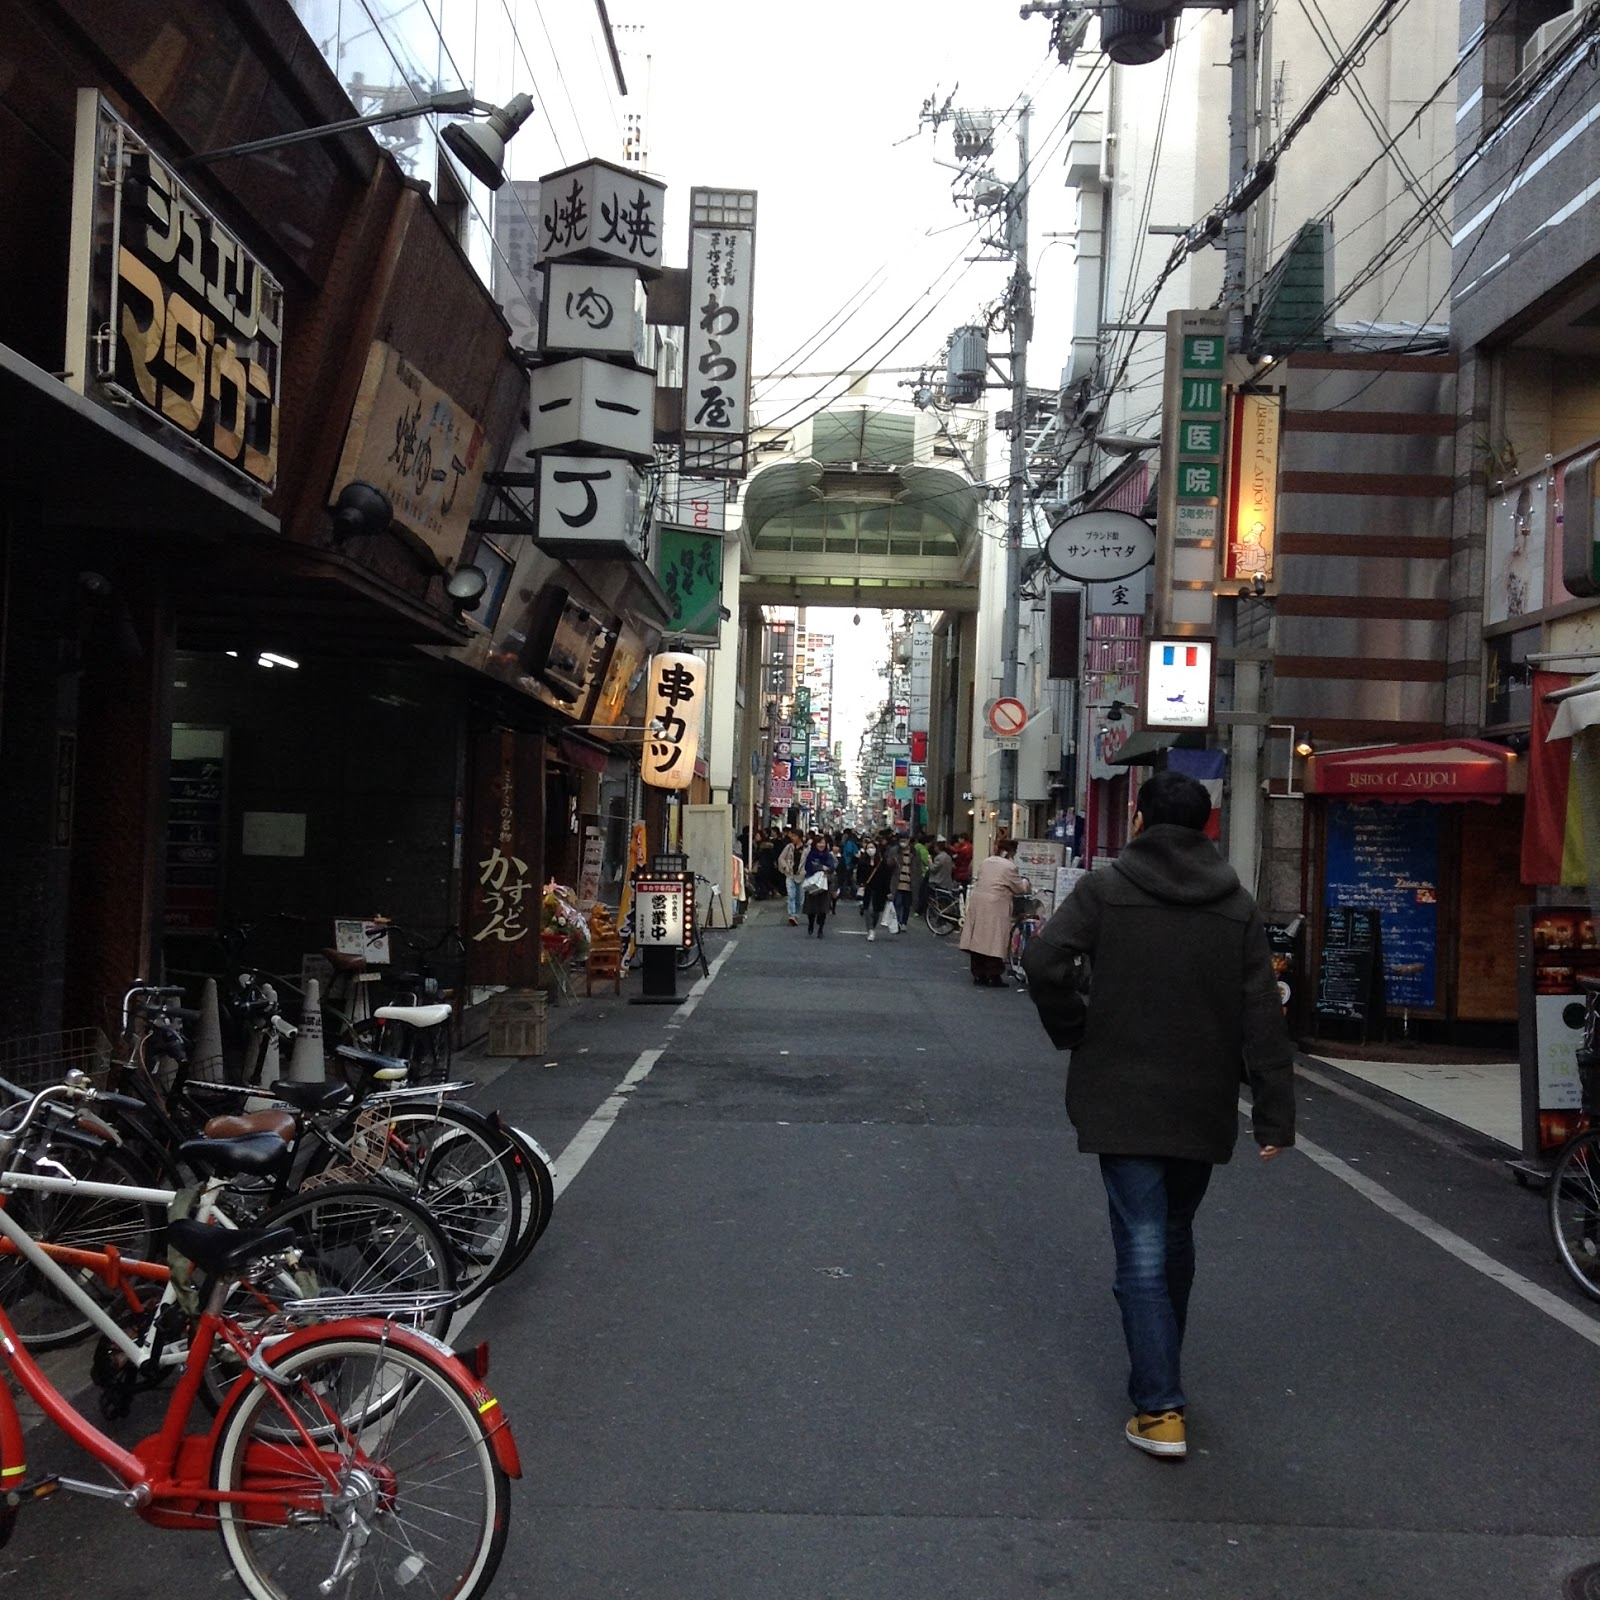 Street in Osaka, Shinsaibashi area